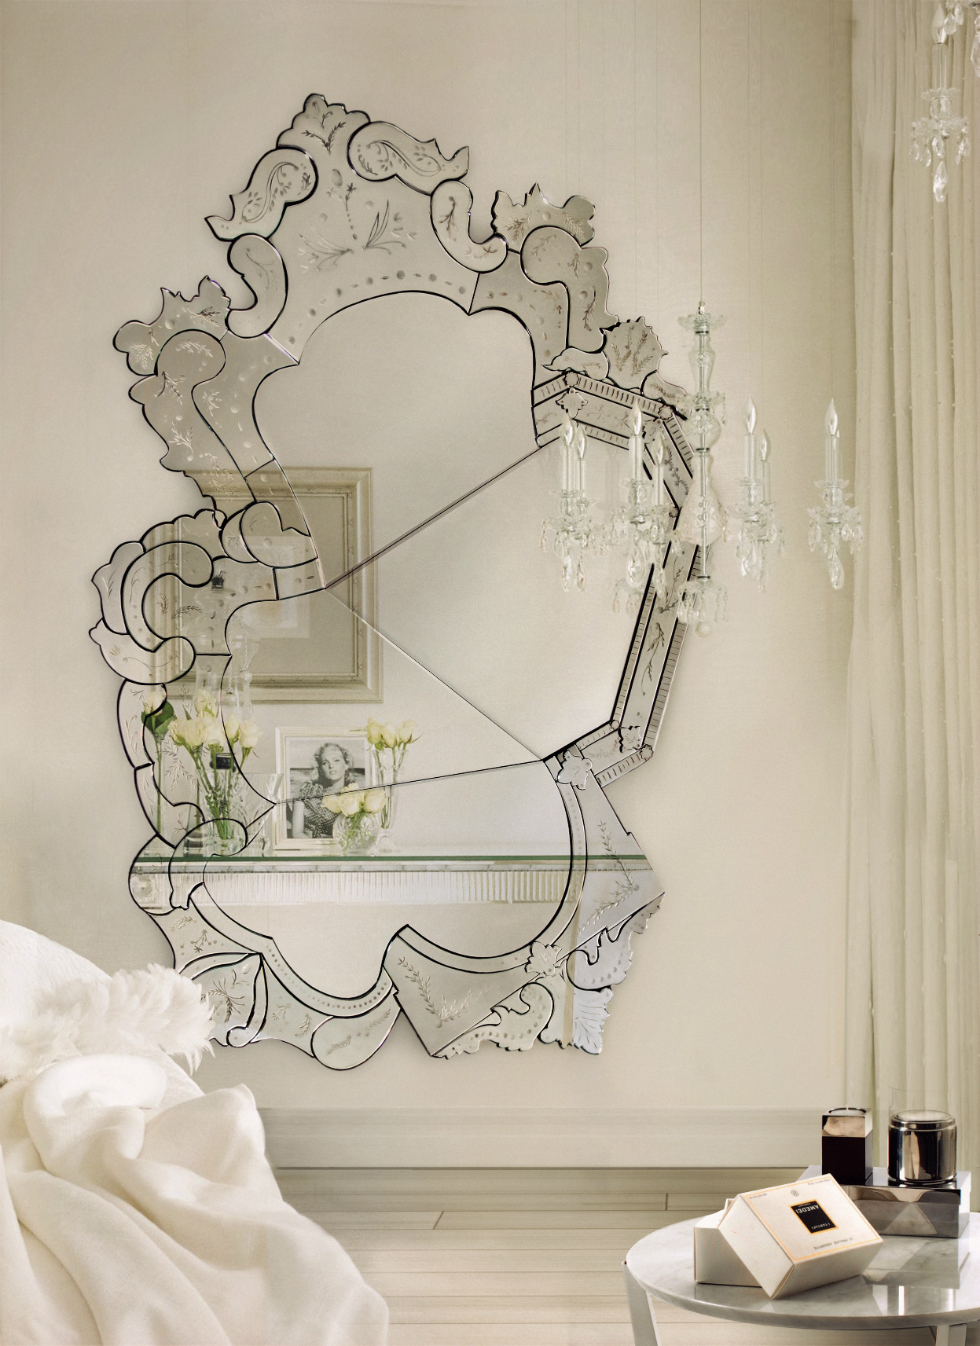 wall mirrors ideas Get Stunning Wall Mirrors Ideas for the Bedroom 16